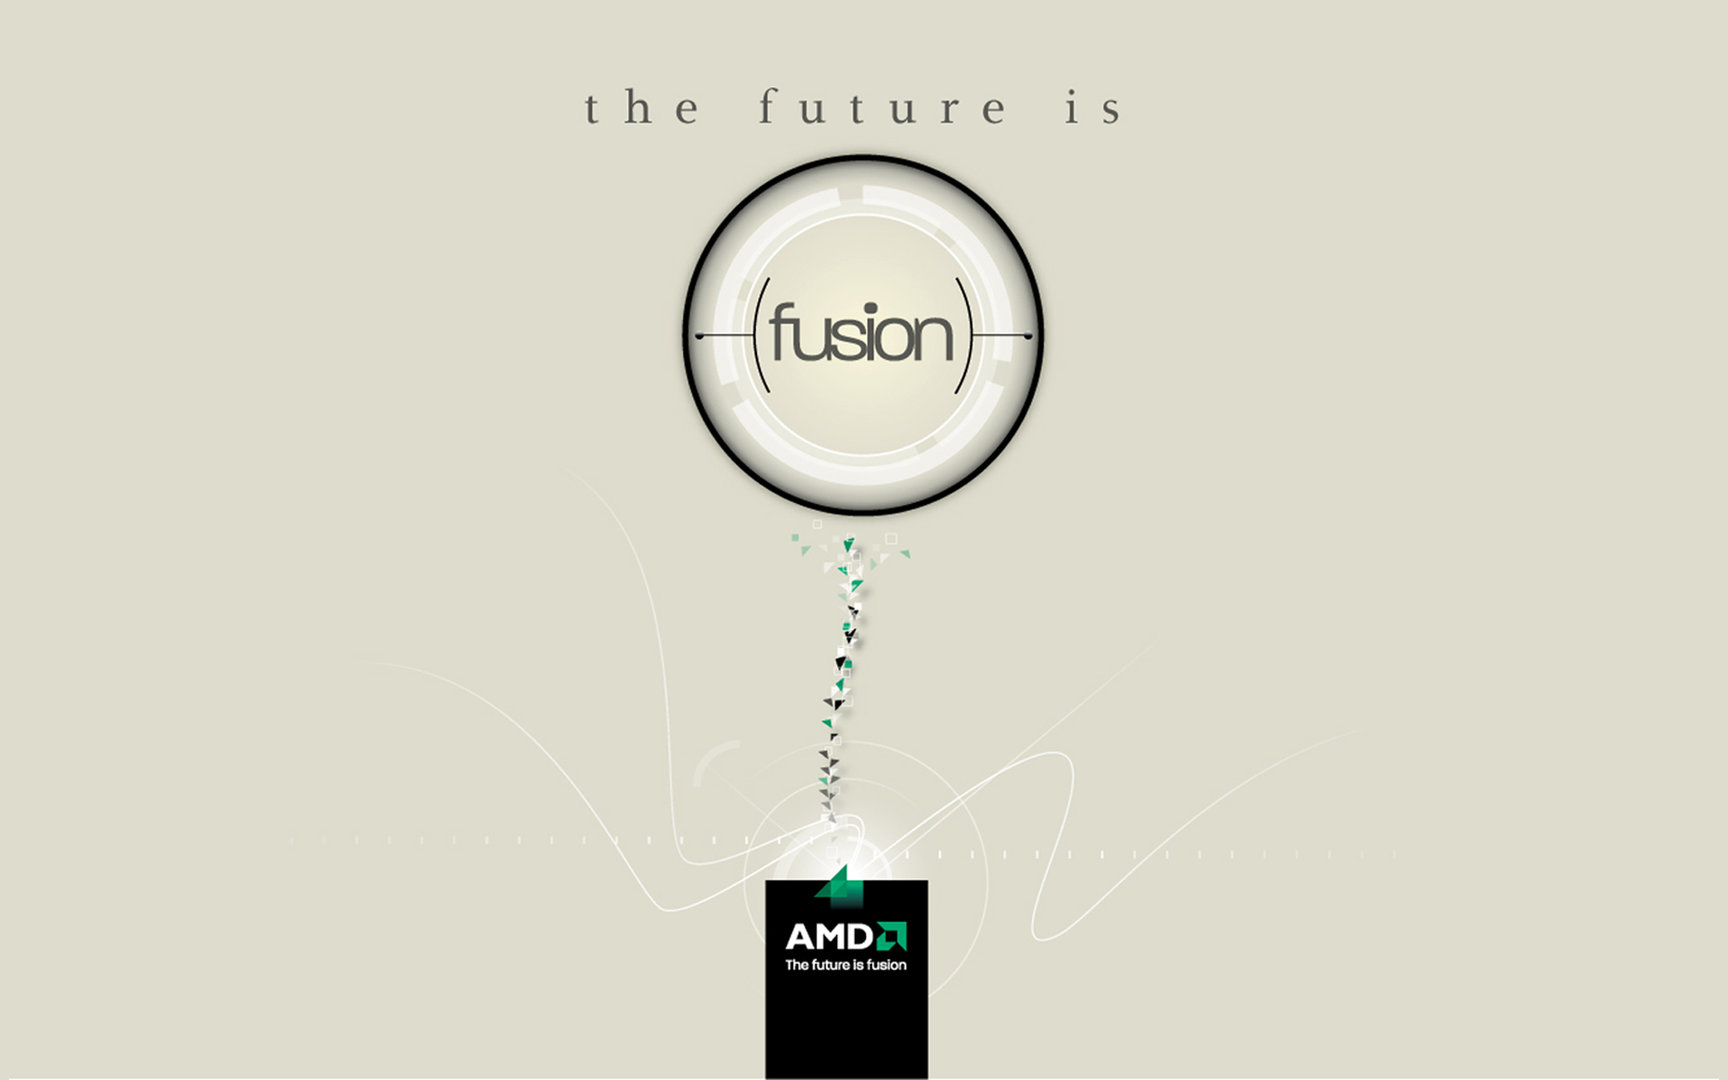 The future is fusion